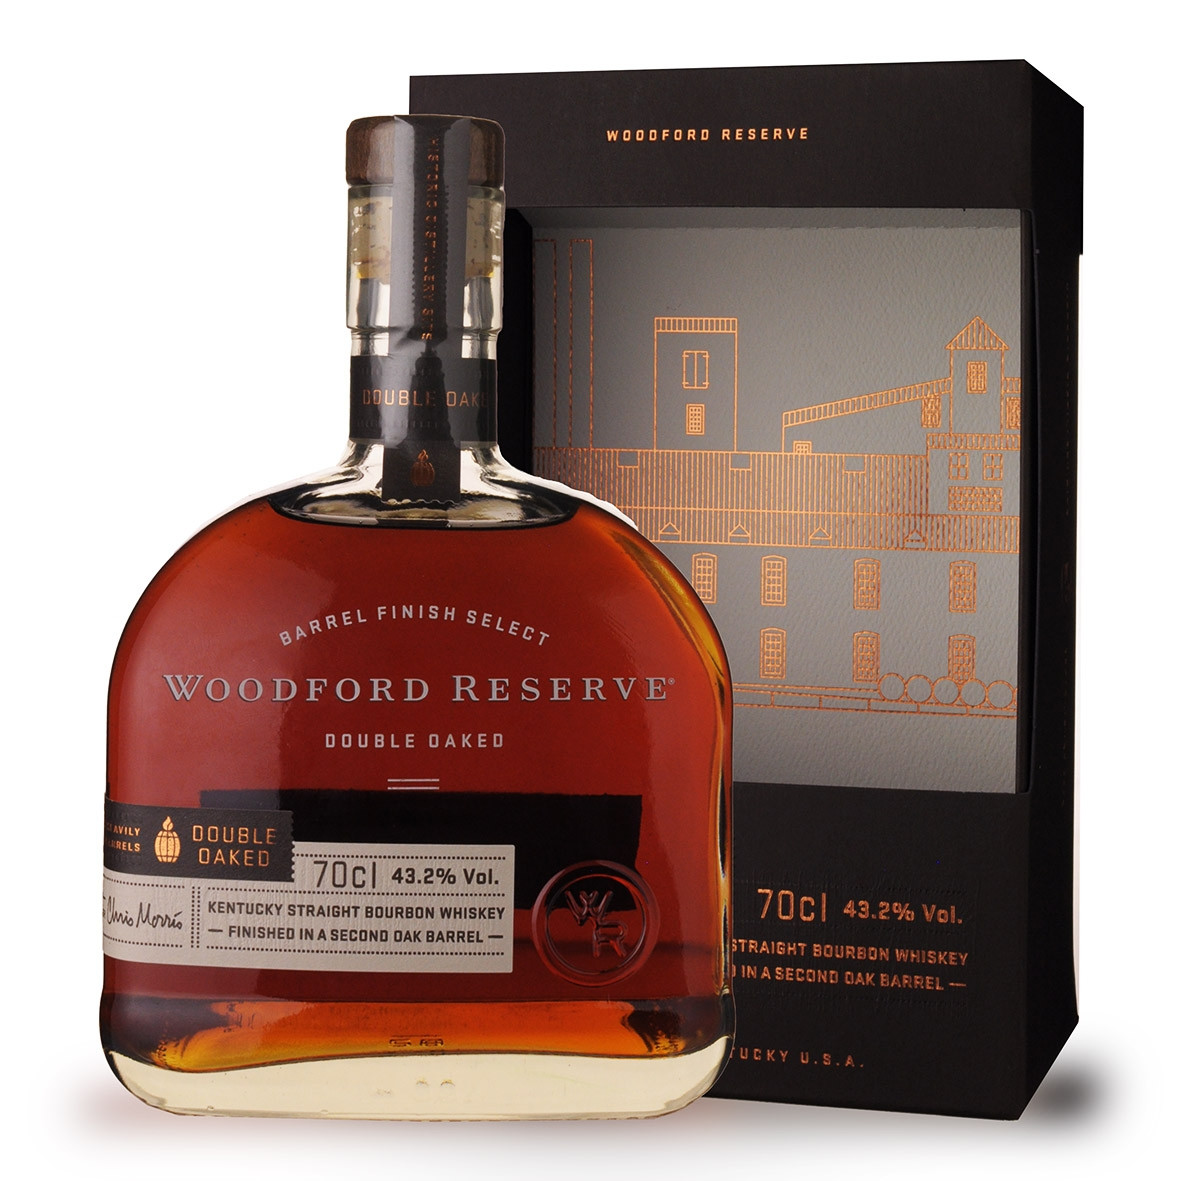 Whisky Woodford Reserve Double Oaked 70cl Etui www.odyssee-vins.com